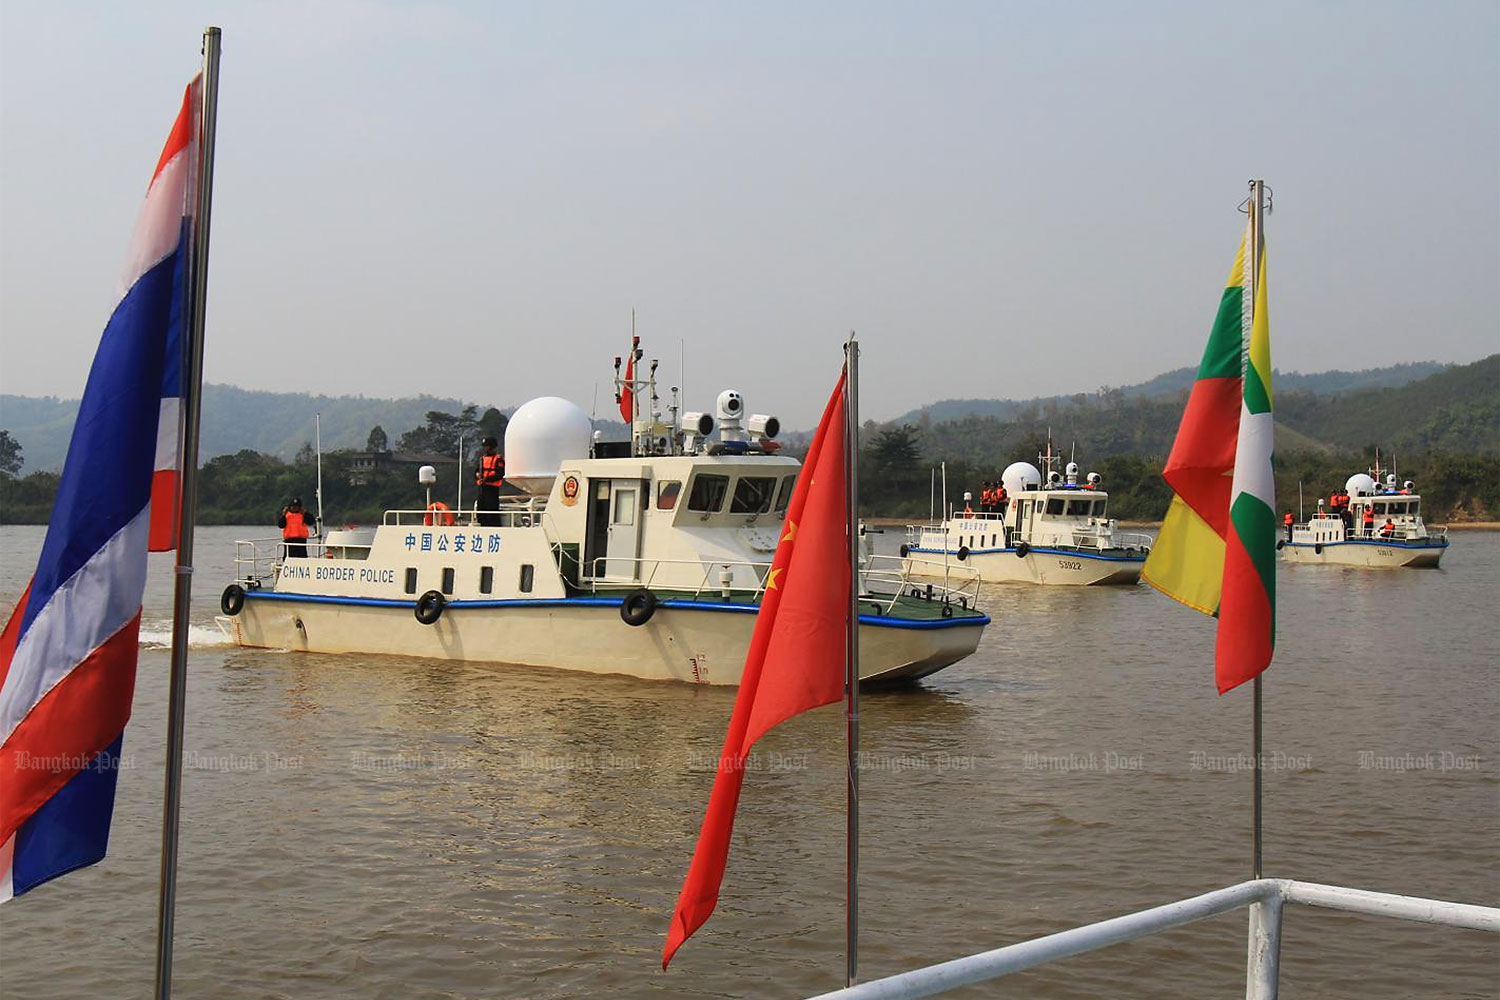 Thai and Lao drug busters patrol the Mekong River in Chiang Saen district of Chiang Rai to thwart drug trafficking in a campaign that also includes Myanmar and China.